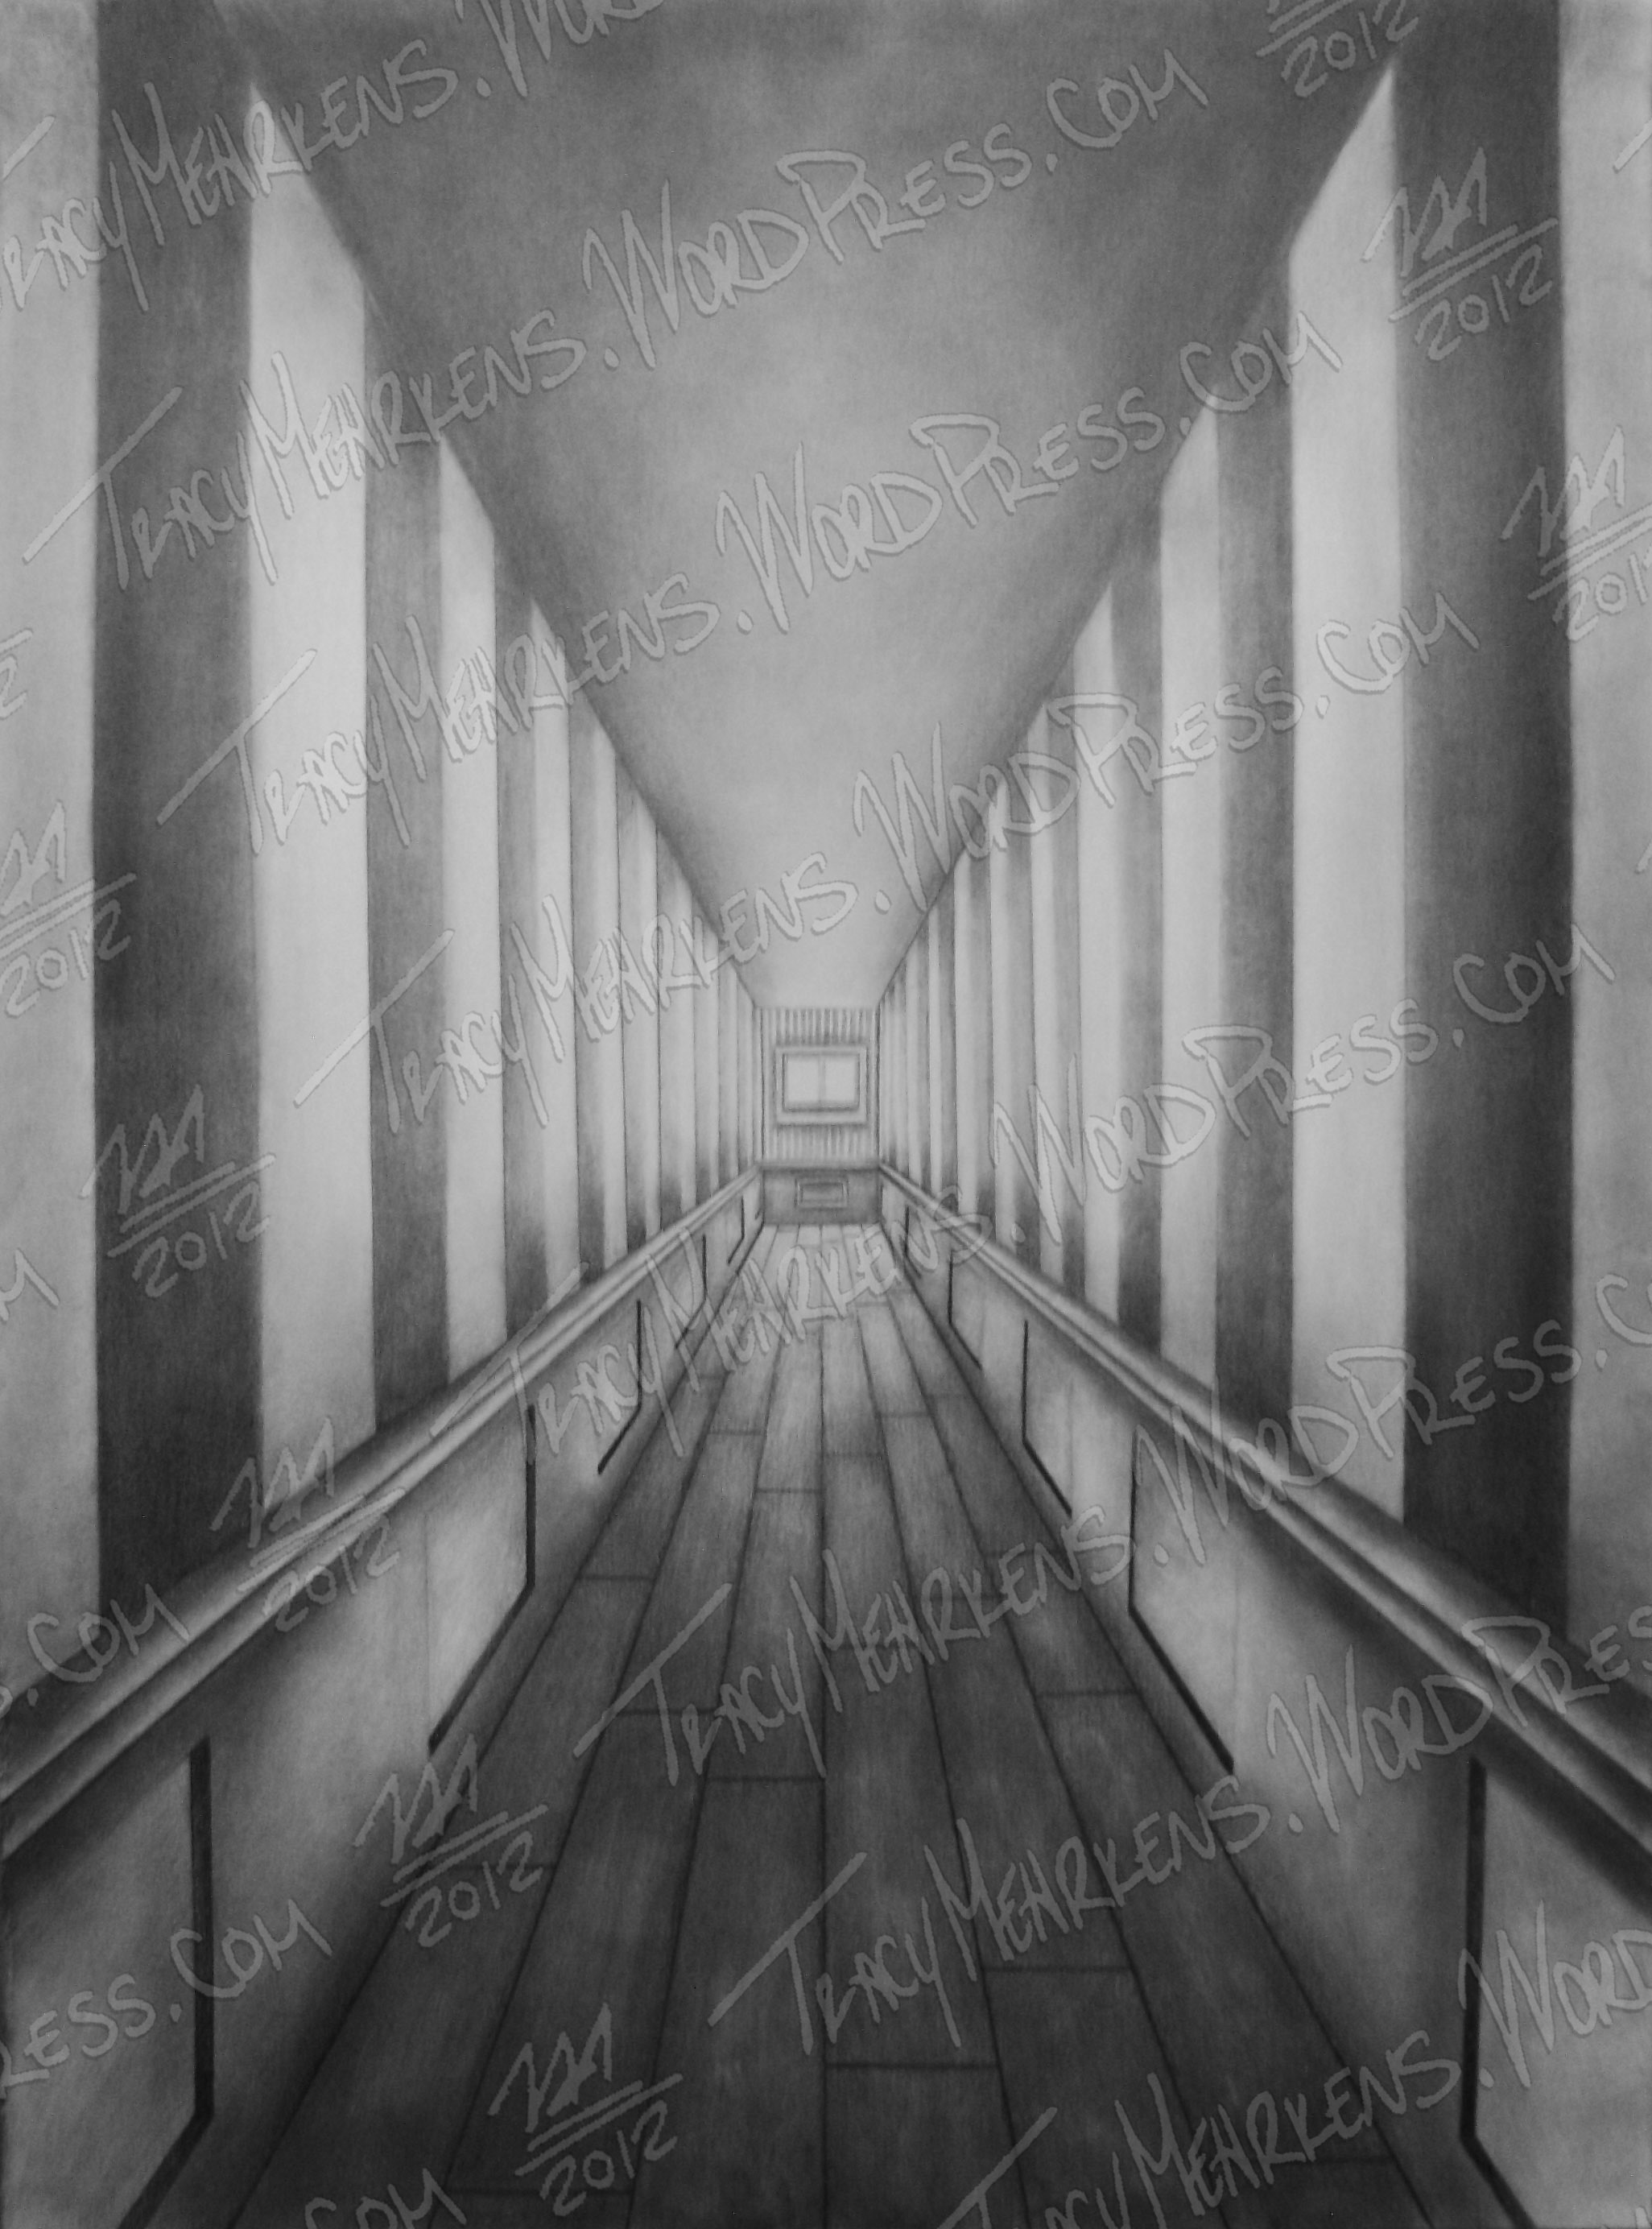 The Depth of Lonely. Graphite on Paper. 18x24 in. 2012.